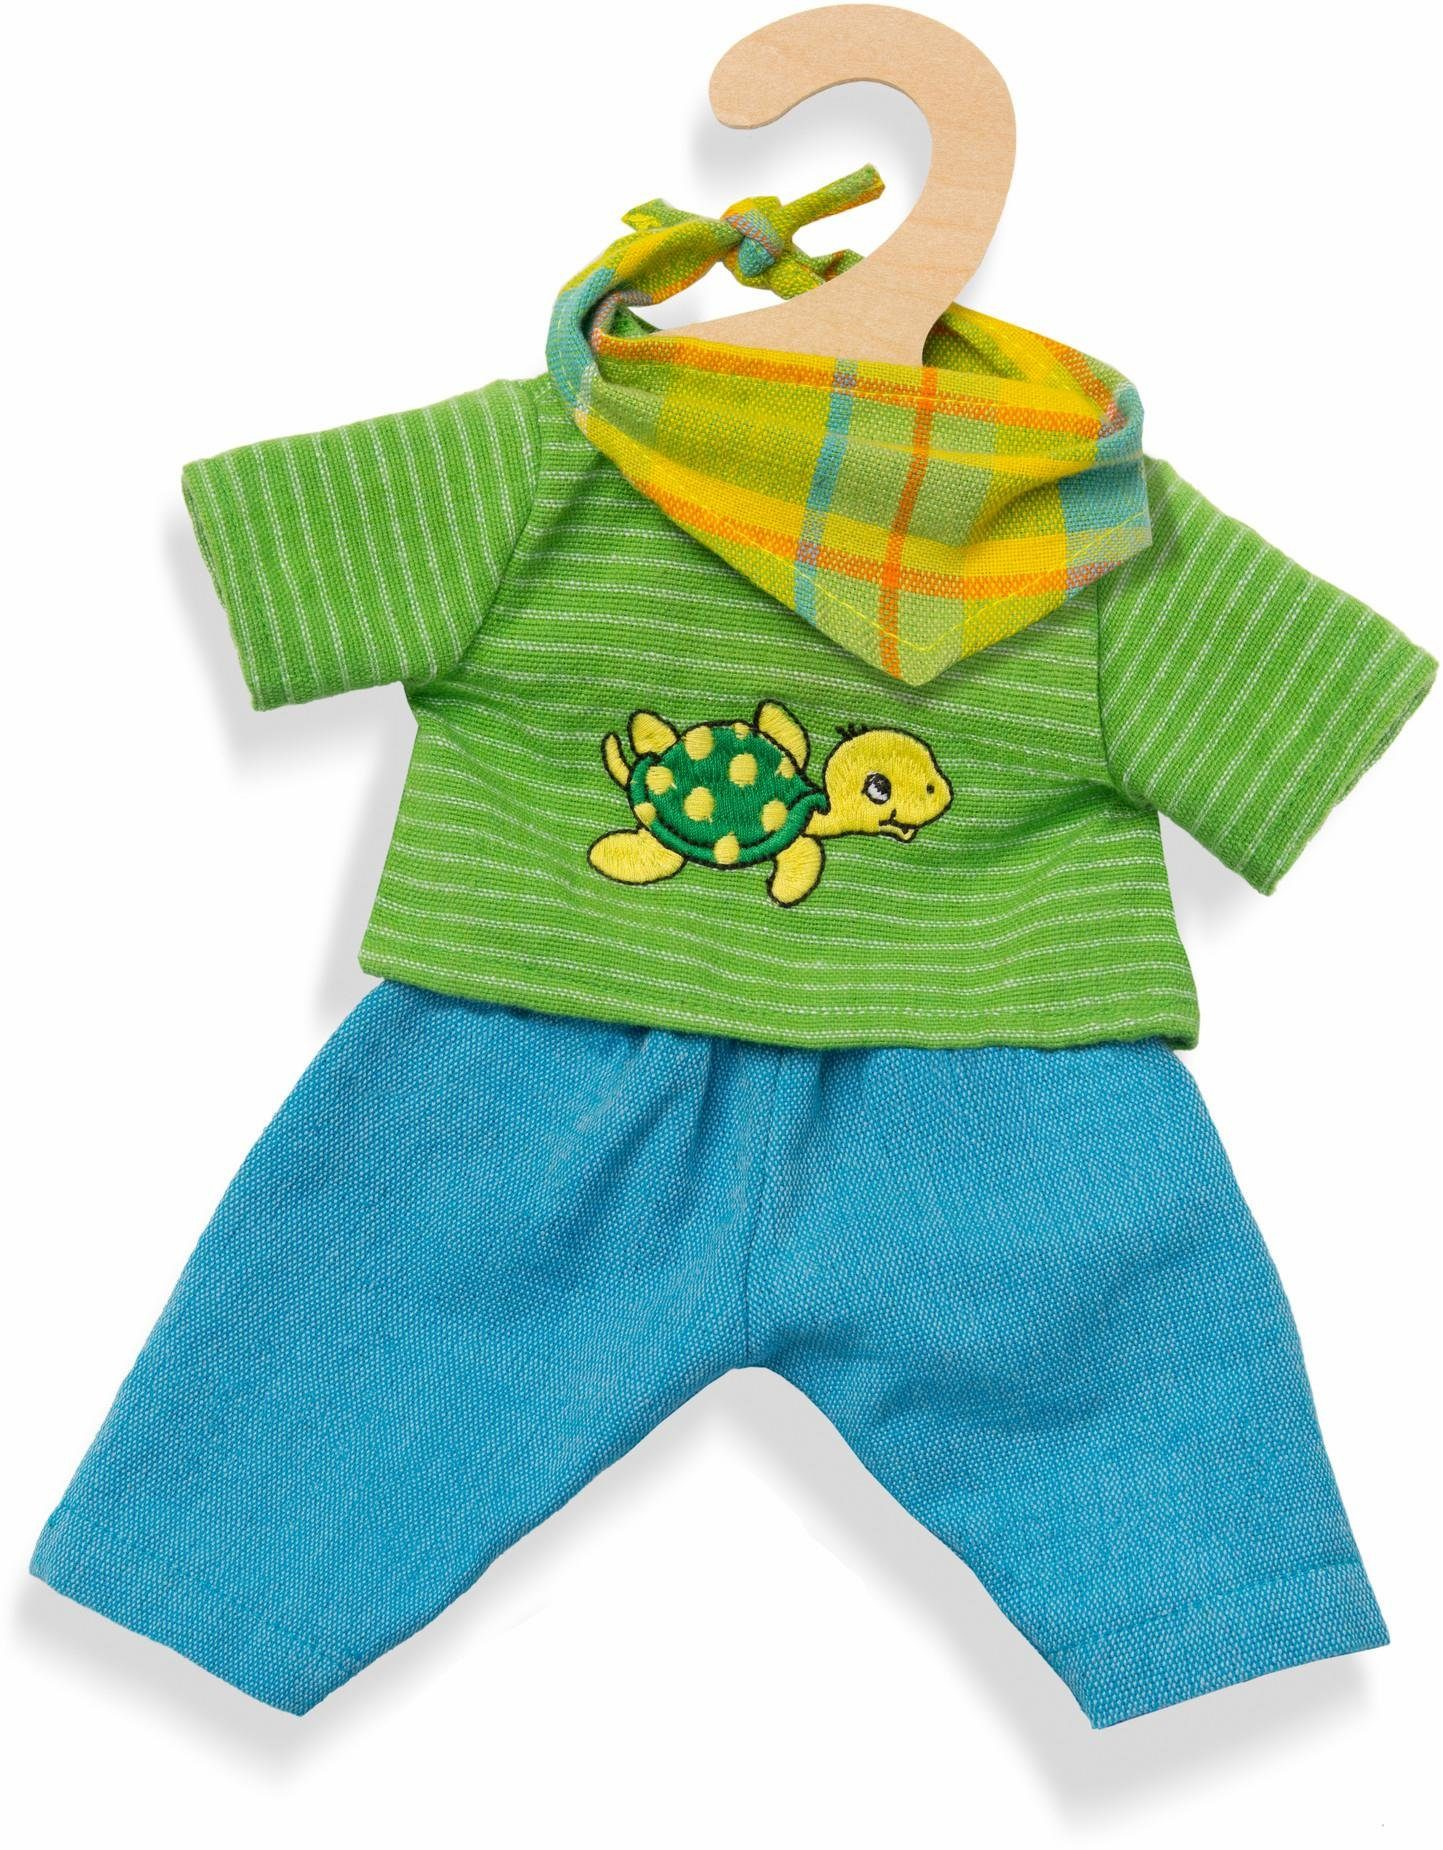 Heless®Puppenkleidung, »Outfit Max, Gr. 28-35 cm«